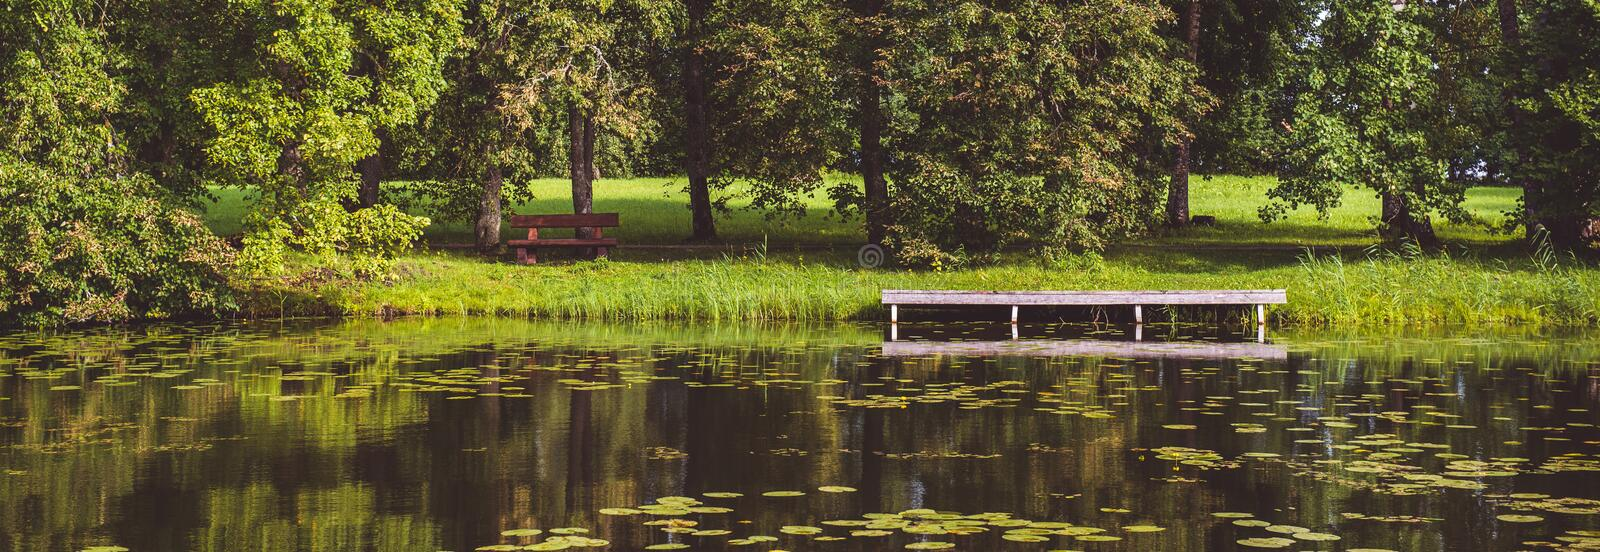 Horizontal image panoramic scenic view summer green landscape with picturesque forest lush lawn wooden pier dock for boats. In pond lake mirrored reflected royalty free stock image